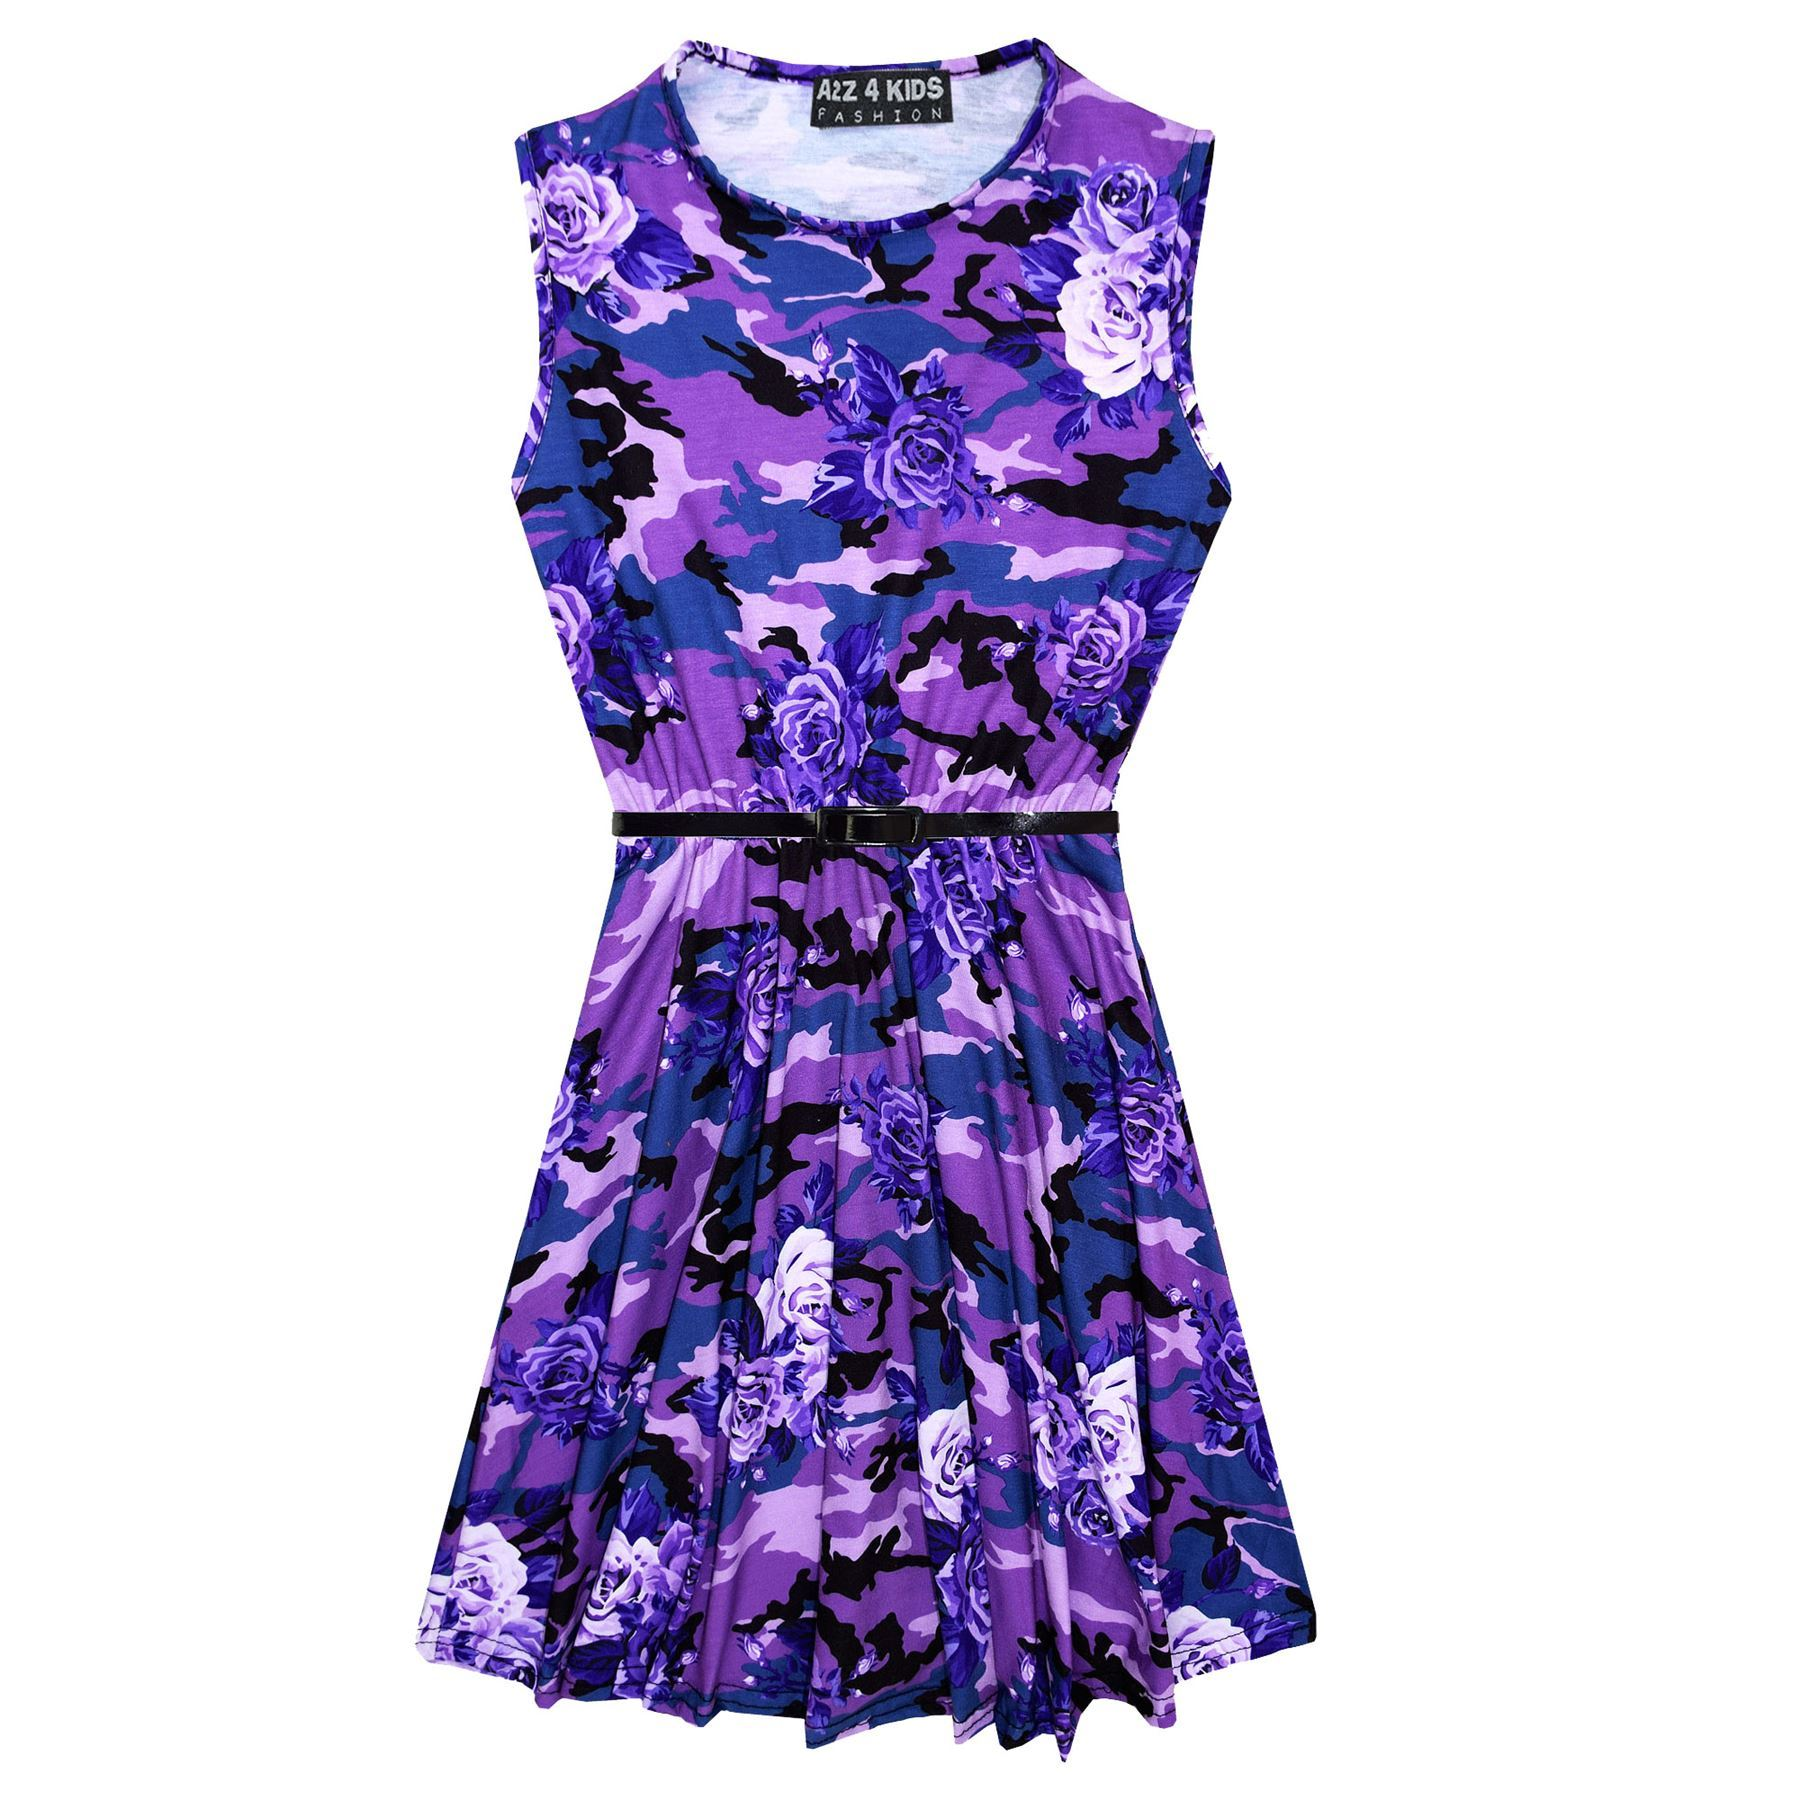 Girls-Skater-Dress-Kids-Camo-Floral-Print-Summer-Party-Dresses-Age-7-13-Years thumbnail 10